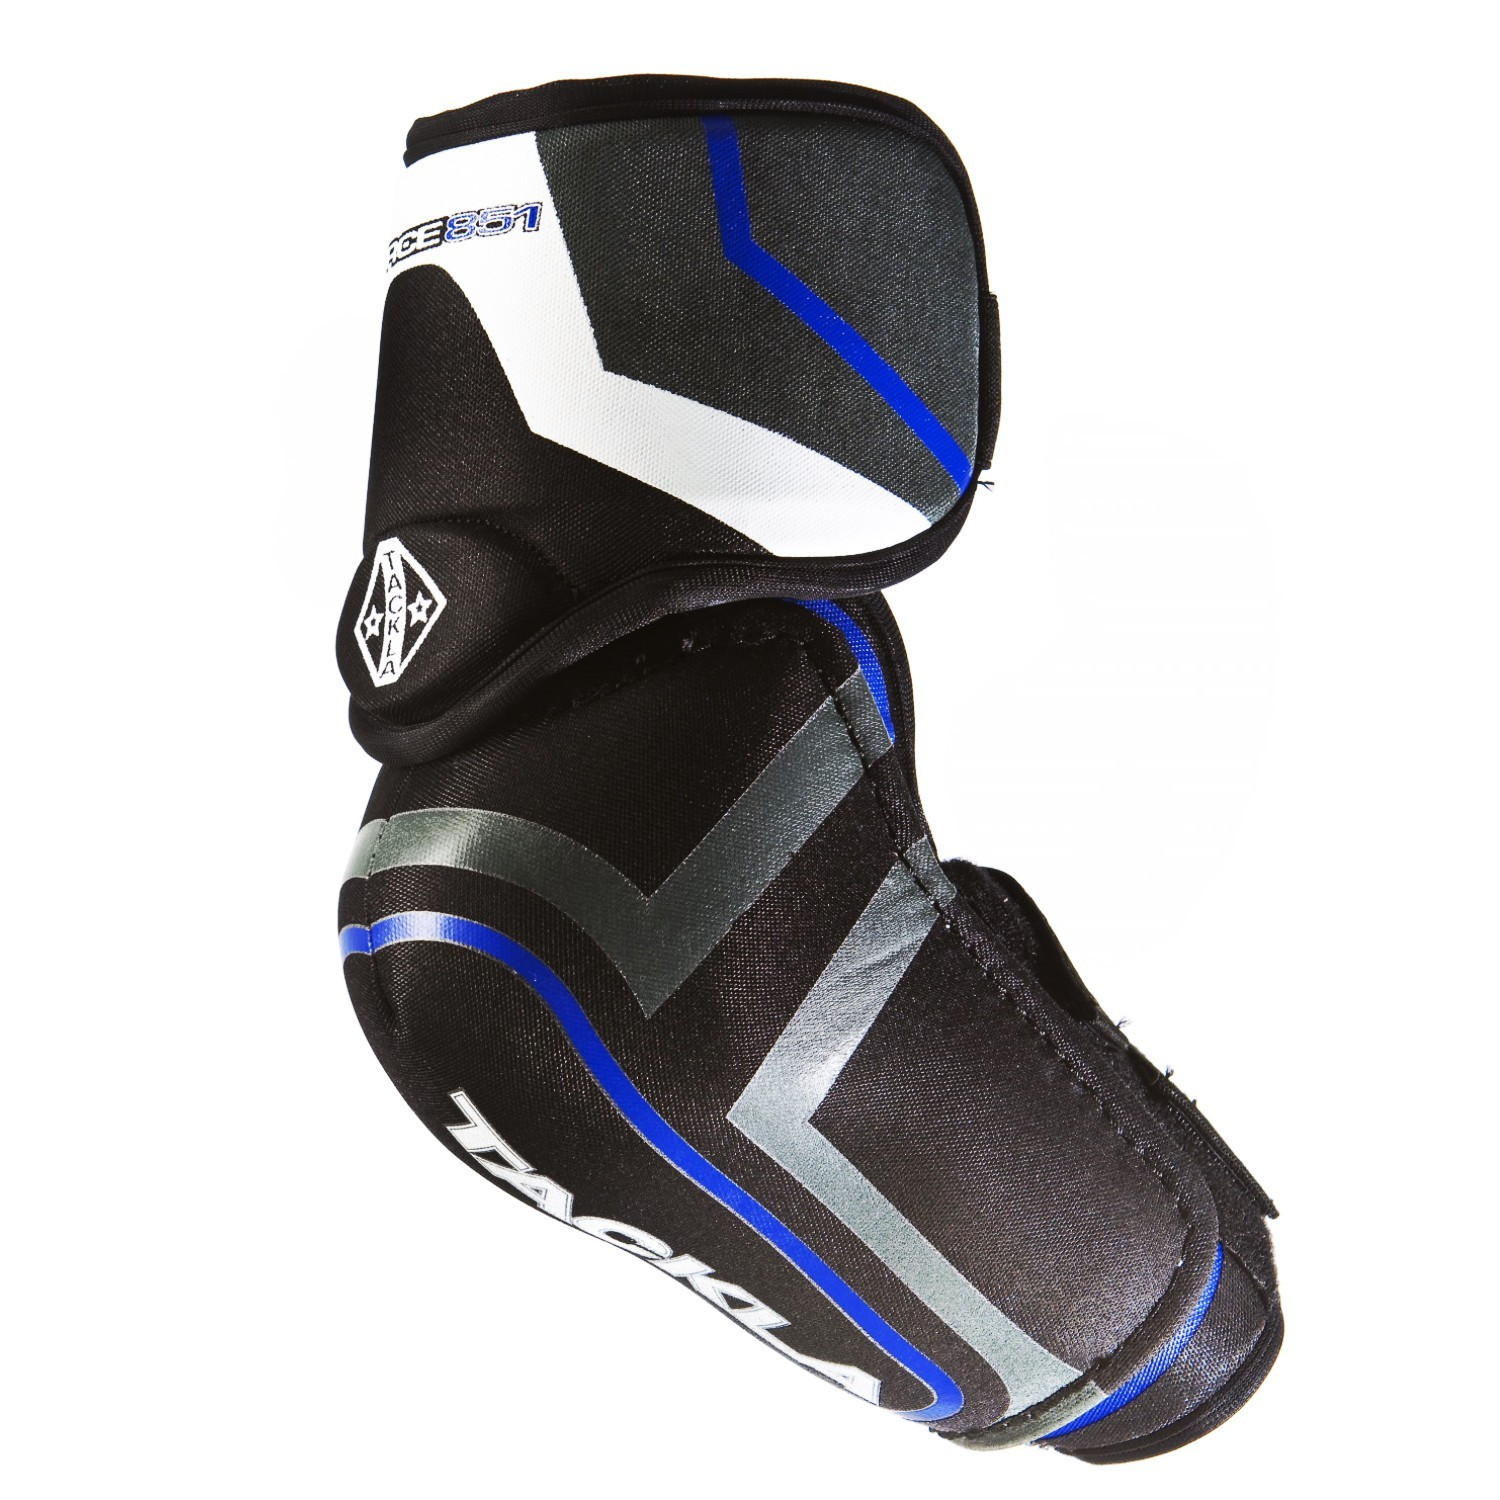 TACKLA Force 851 Youth Elbow Pads